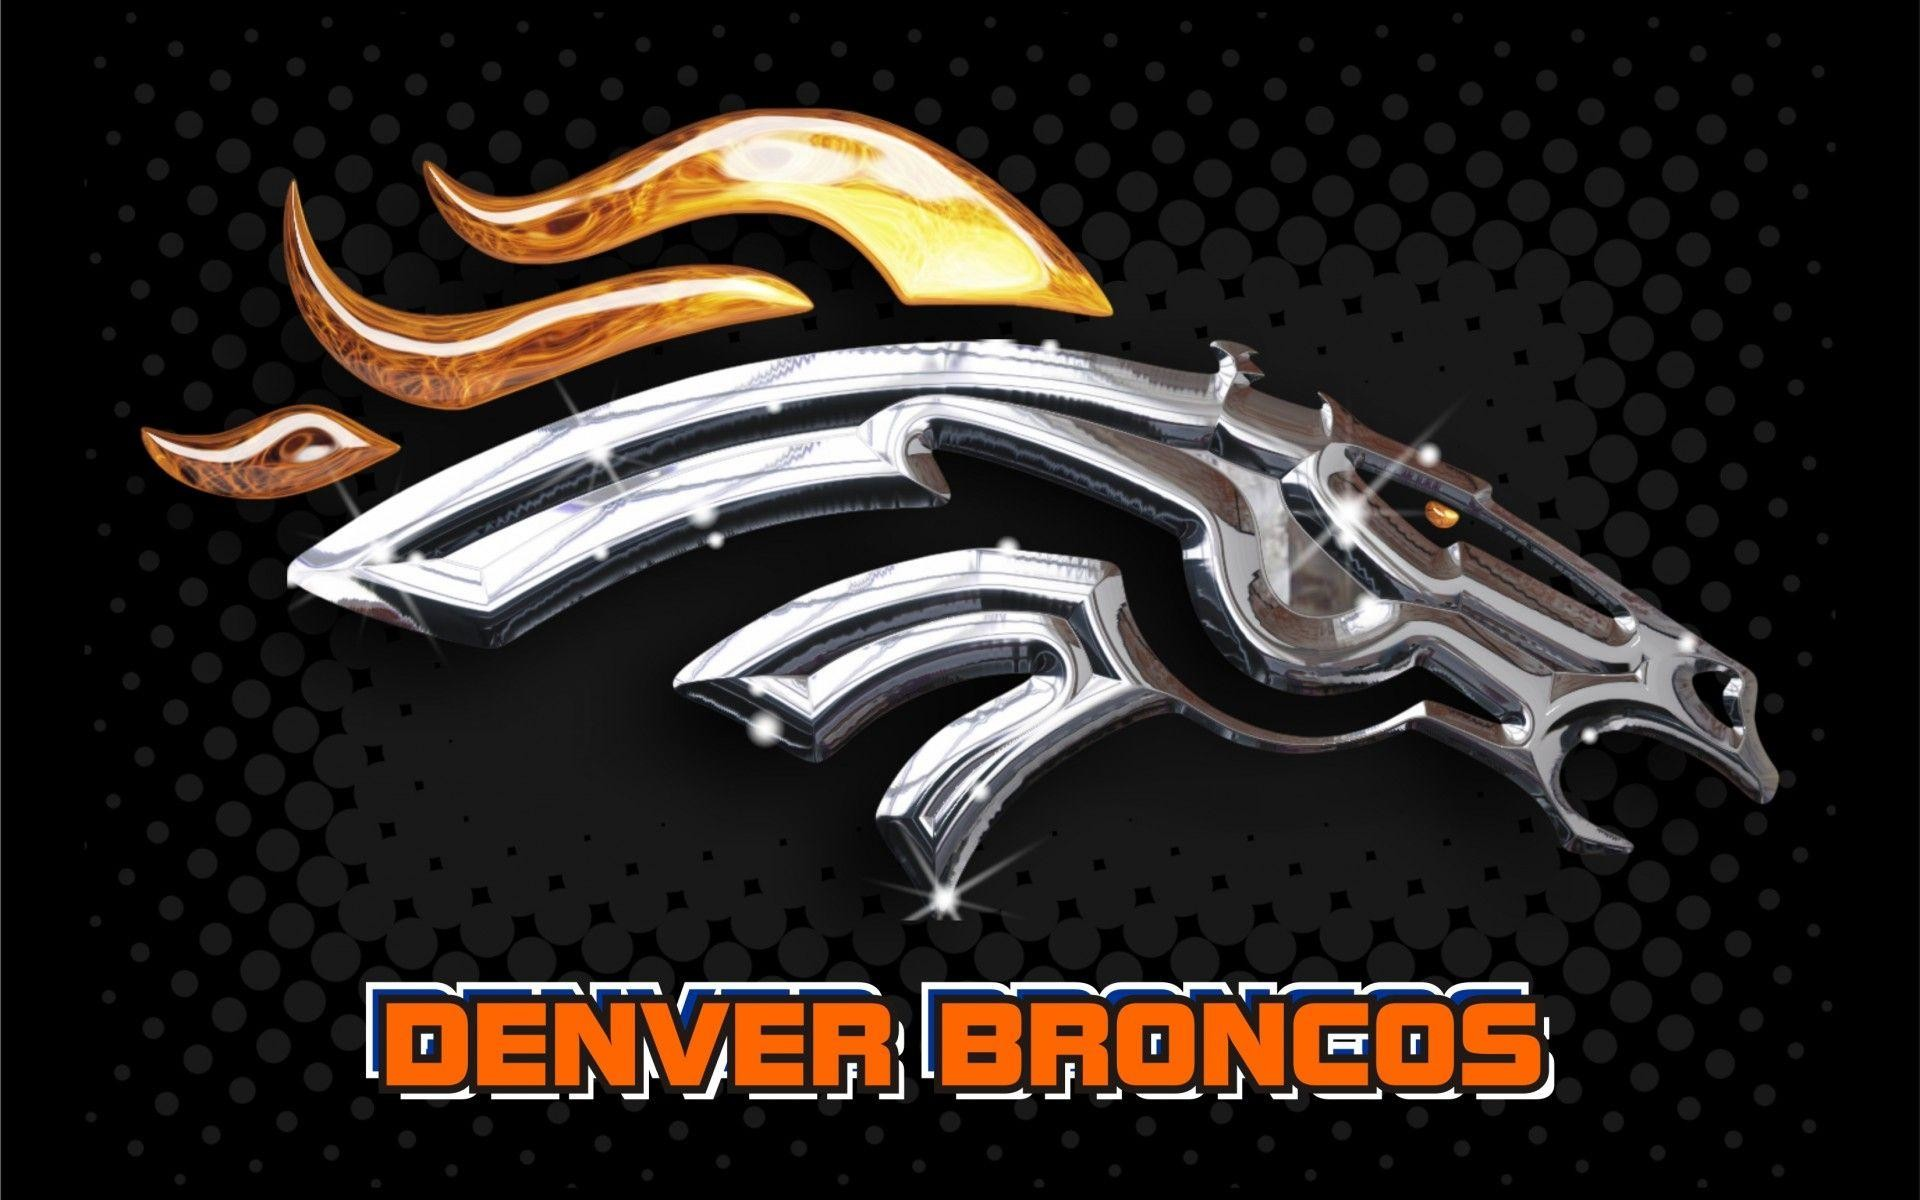 Cool nfl football wallpapers wallpapertag - Denver broncos background ...